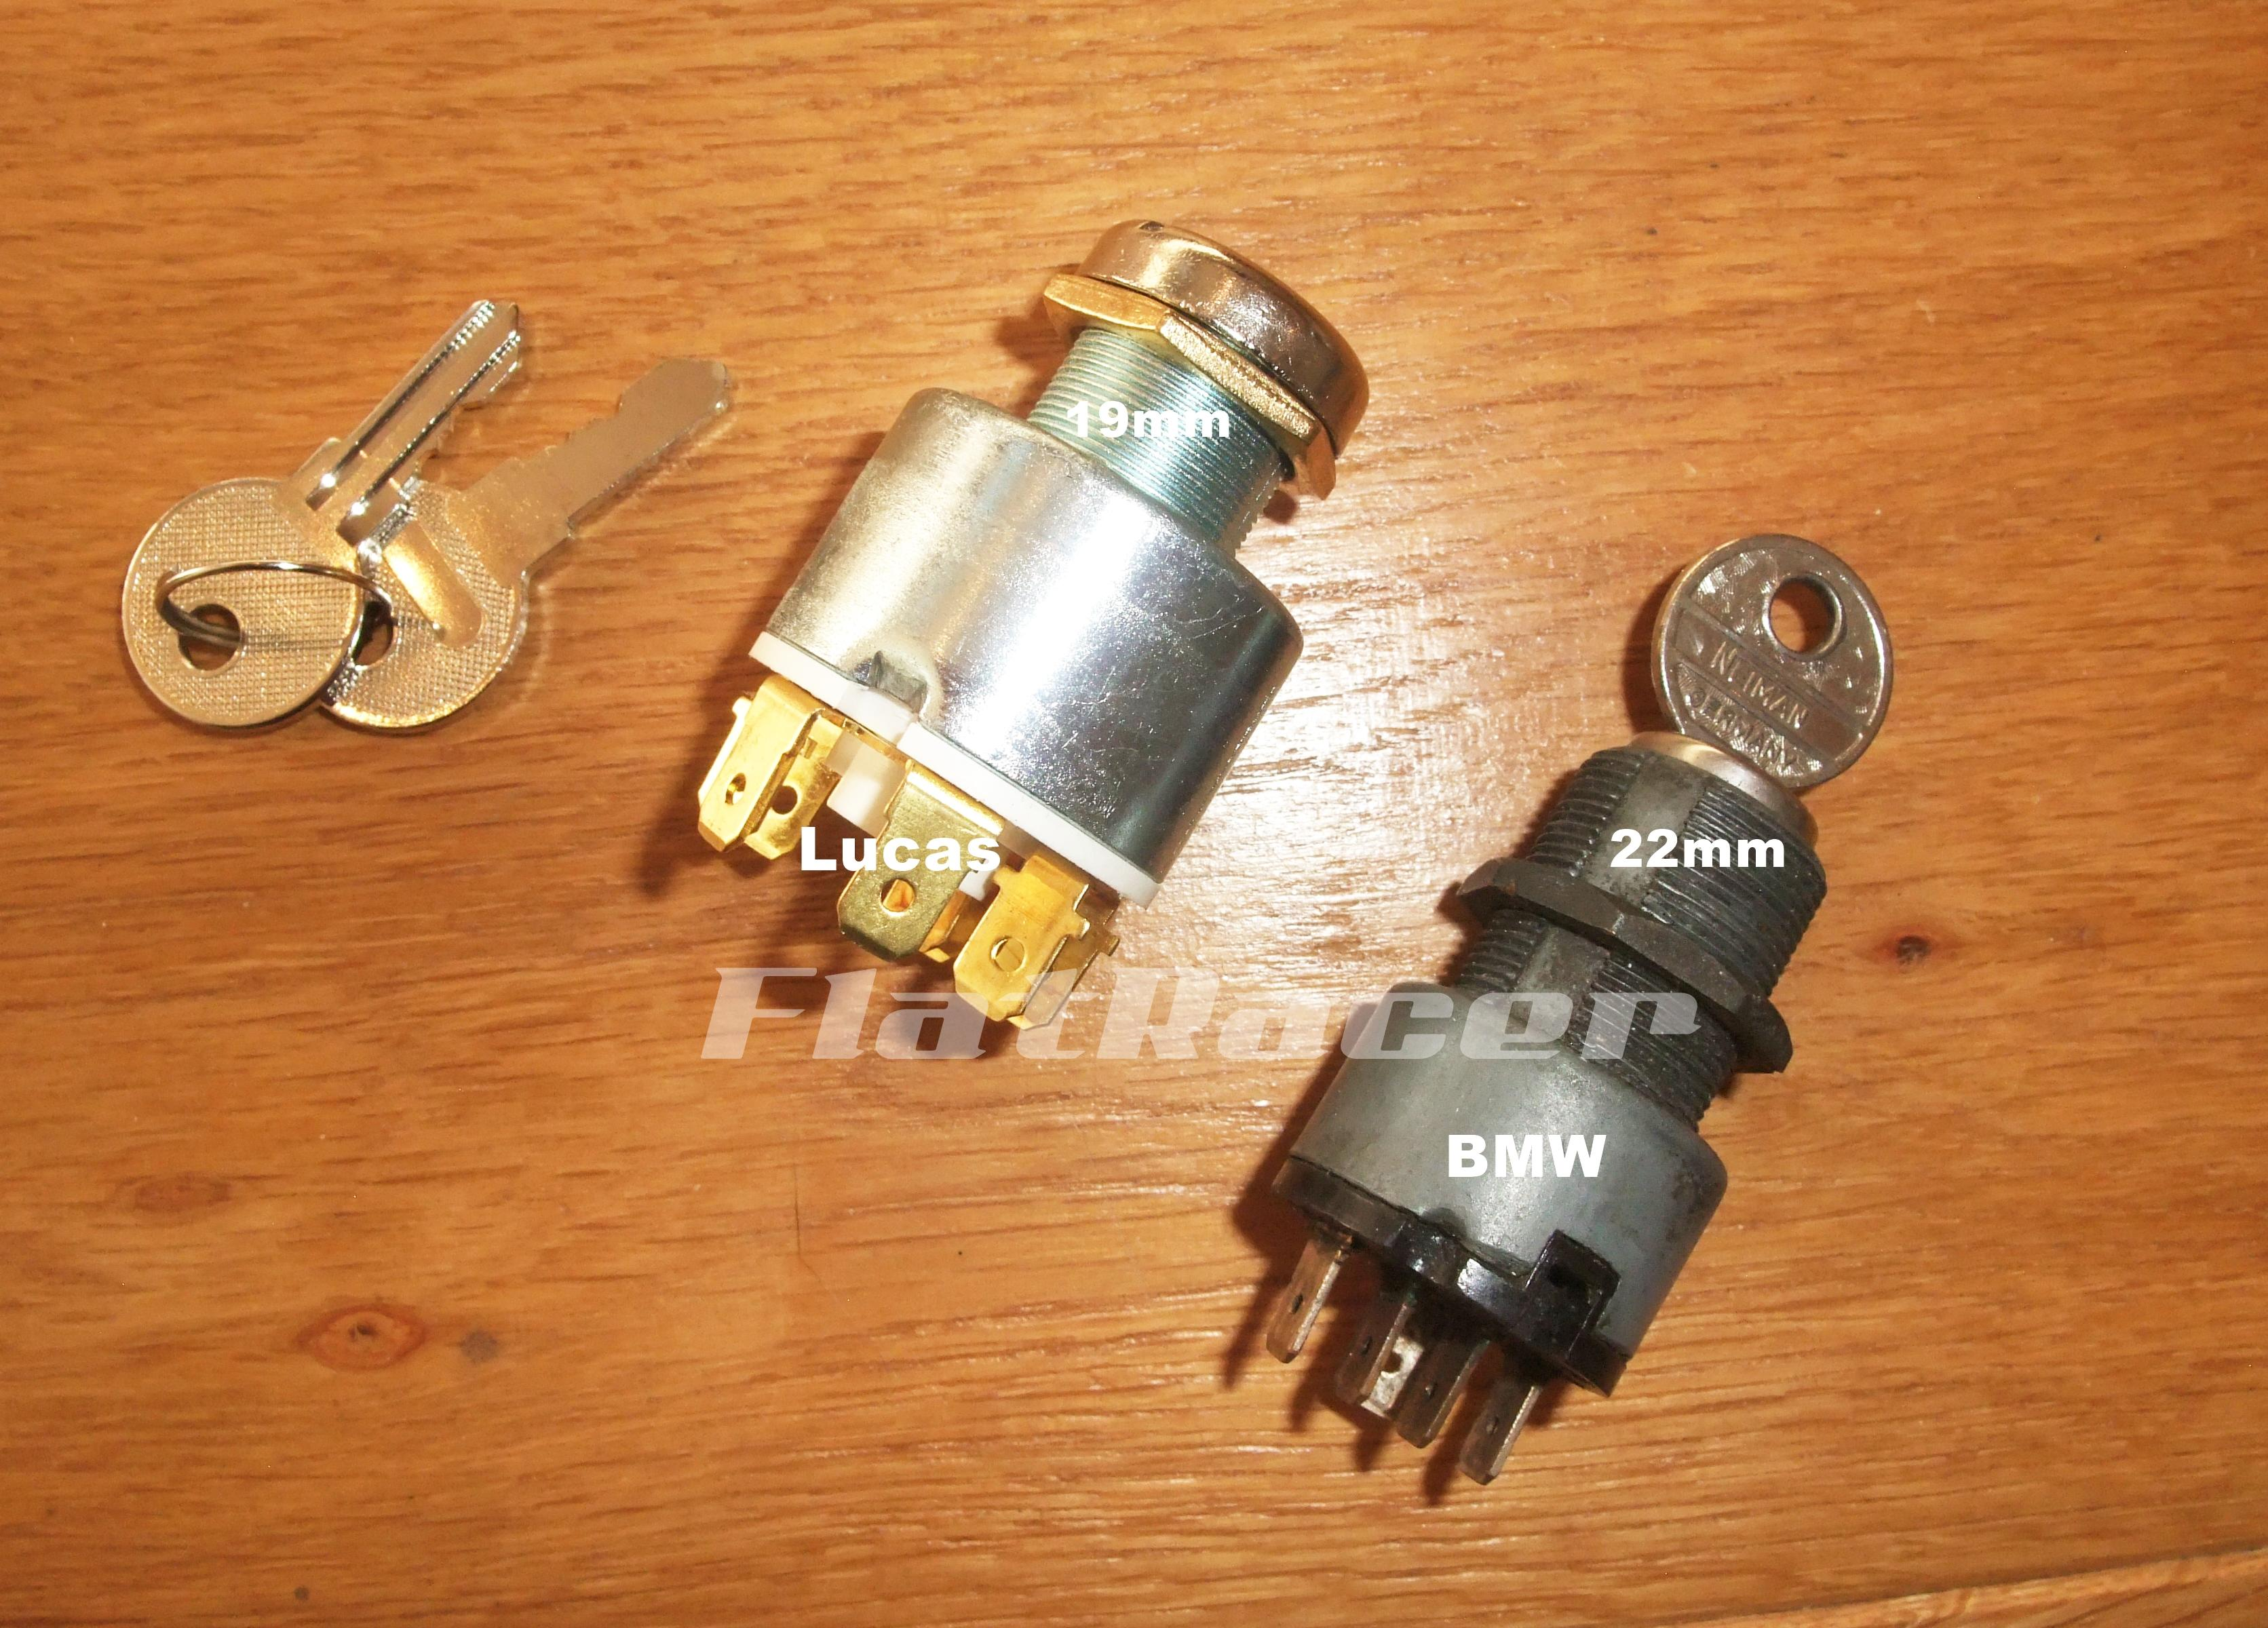 Universal fit ignition switch - 3 position